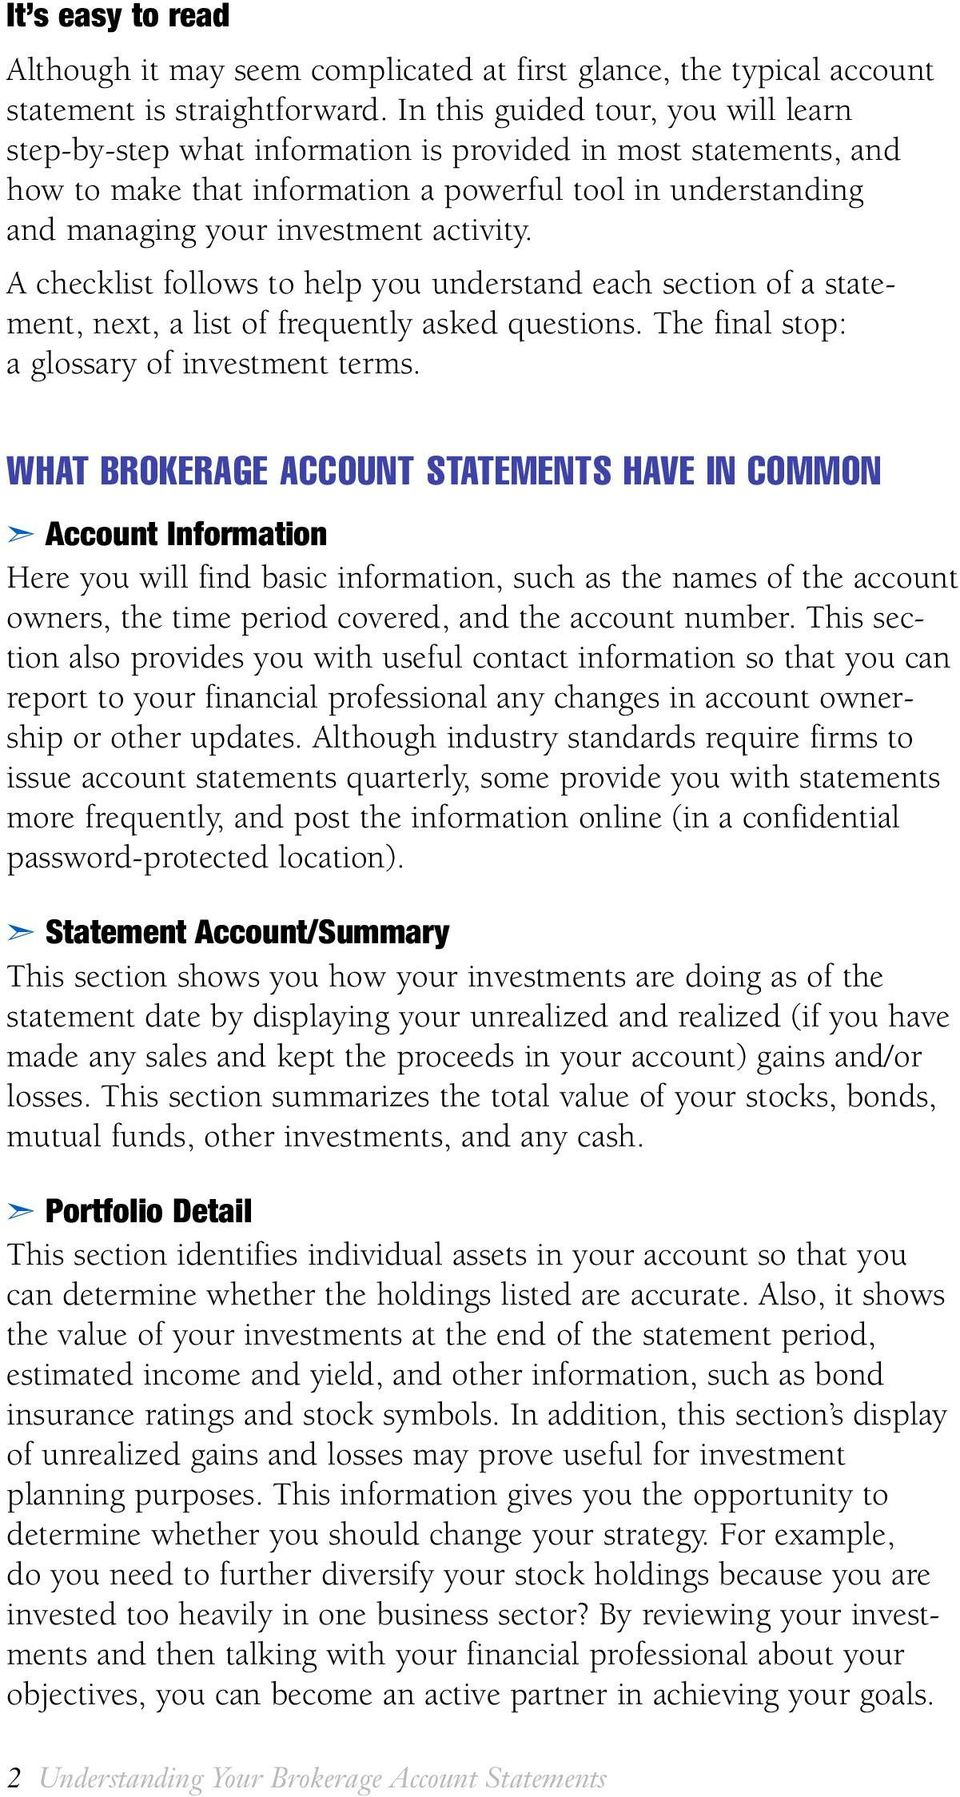 activity. A checklist follows to help you understand each section of a statement, next, a list of frequently asked questions. The final stop: a glossary of investment terms.